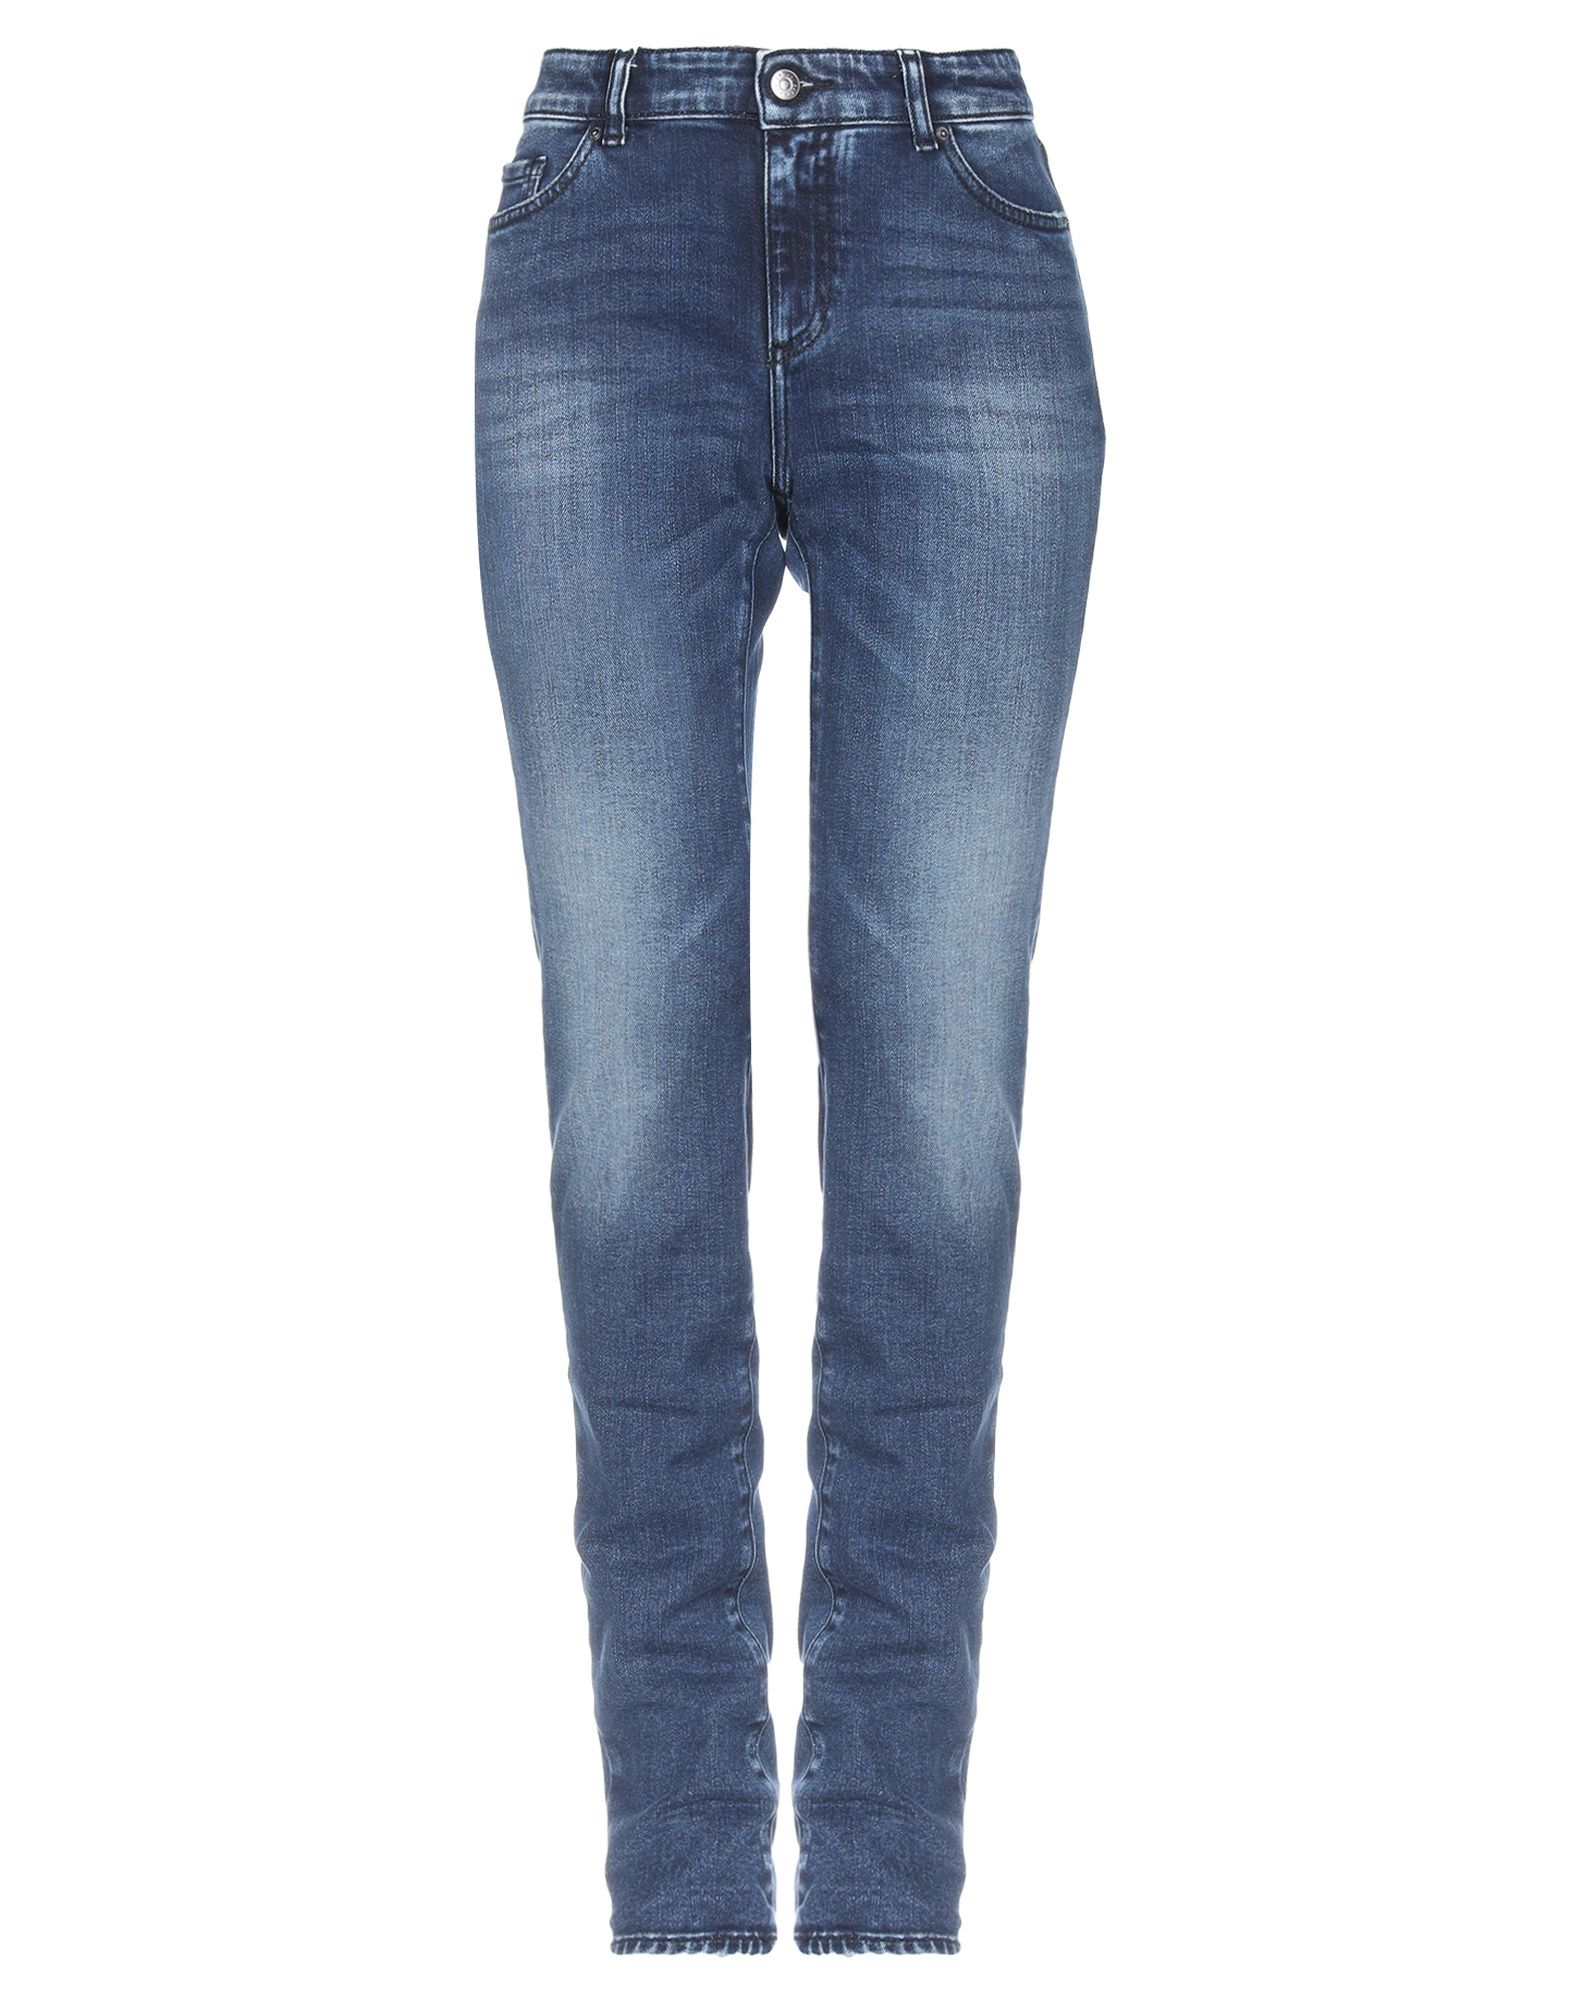 ARMANI EXCHANGE Denim pants - Item 42740655